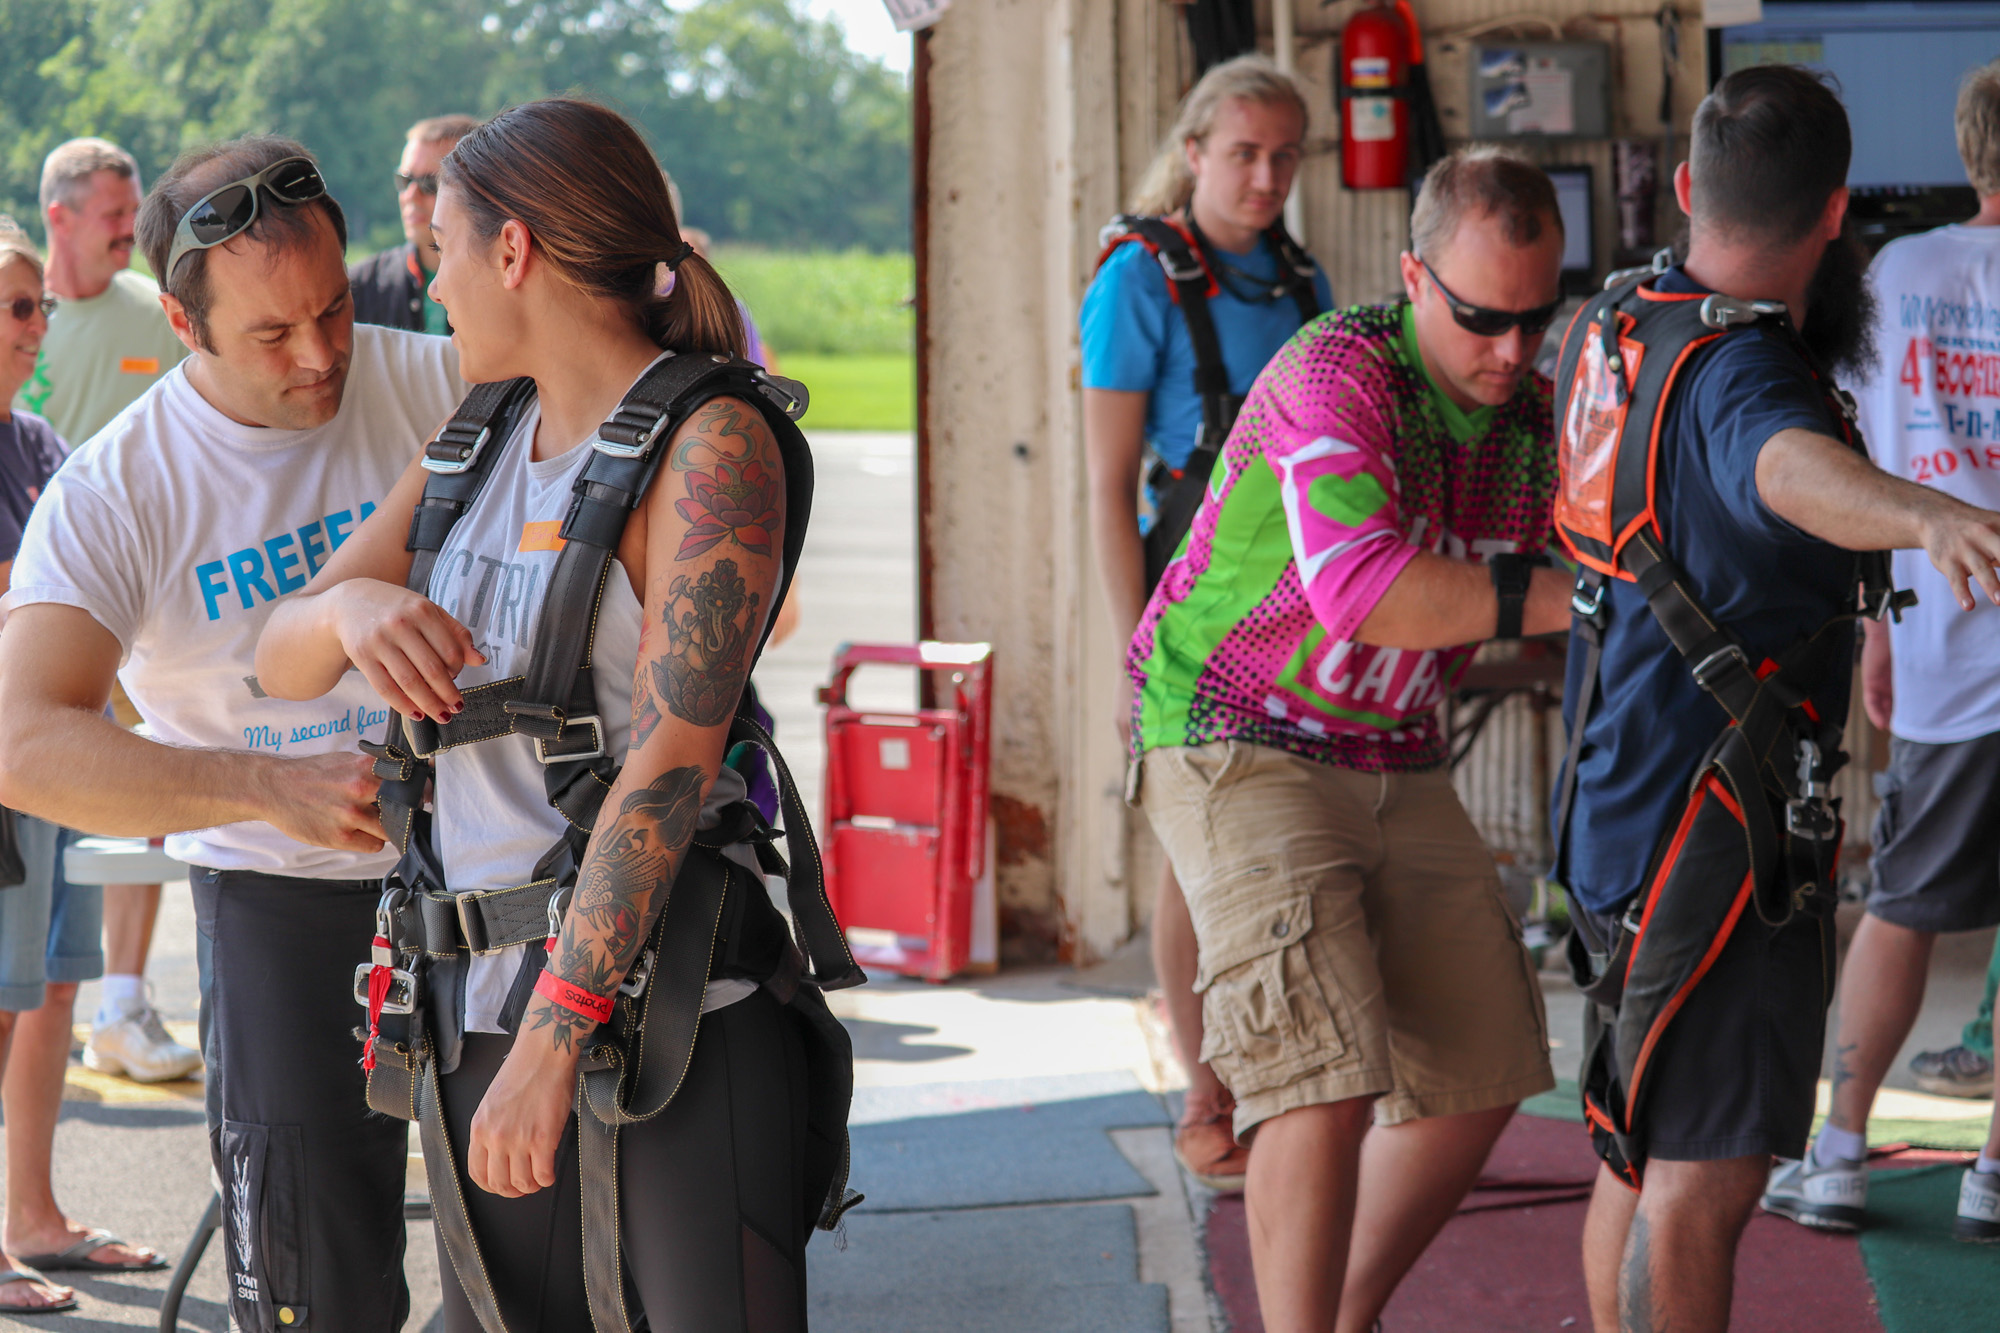 Skydiving equipment test at WNY Skydiving dropzone